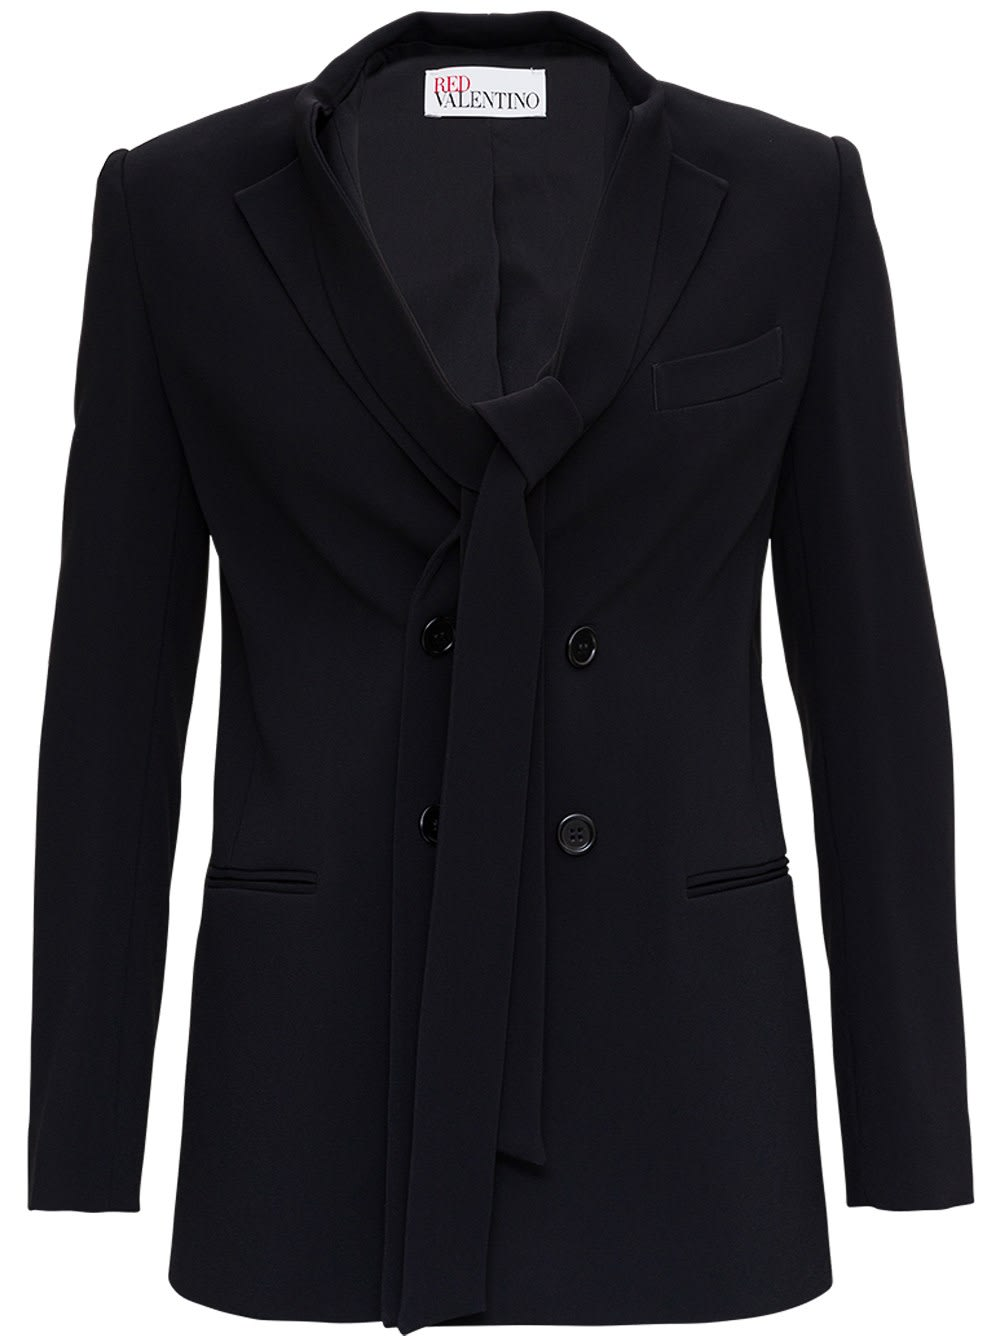 Red Valentino DOUBLE BREASTED JACKET WITH BOW DETAIL